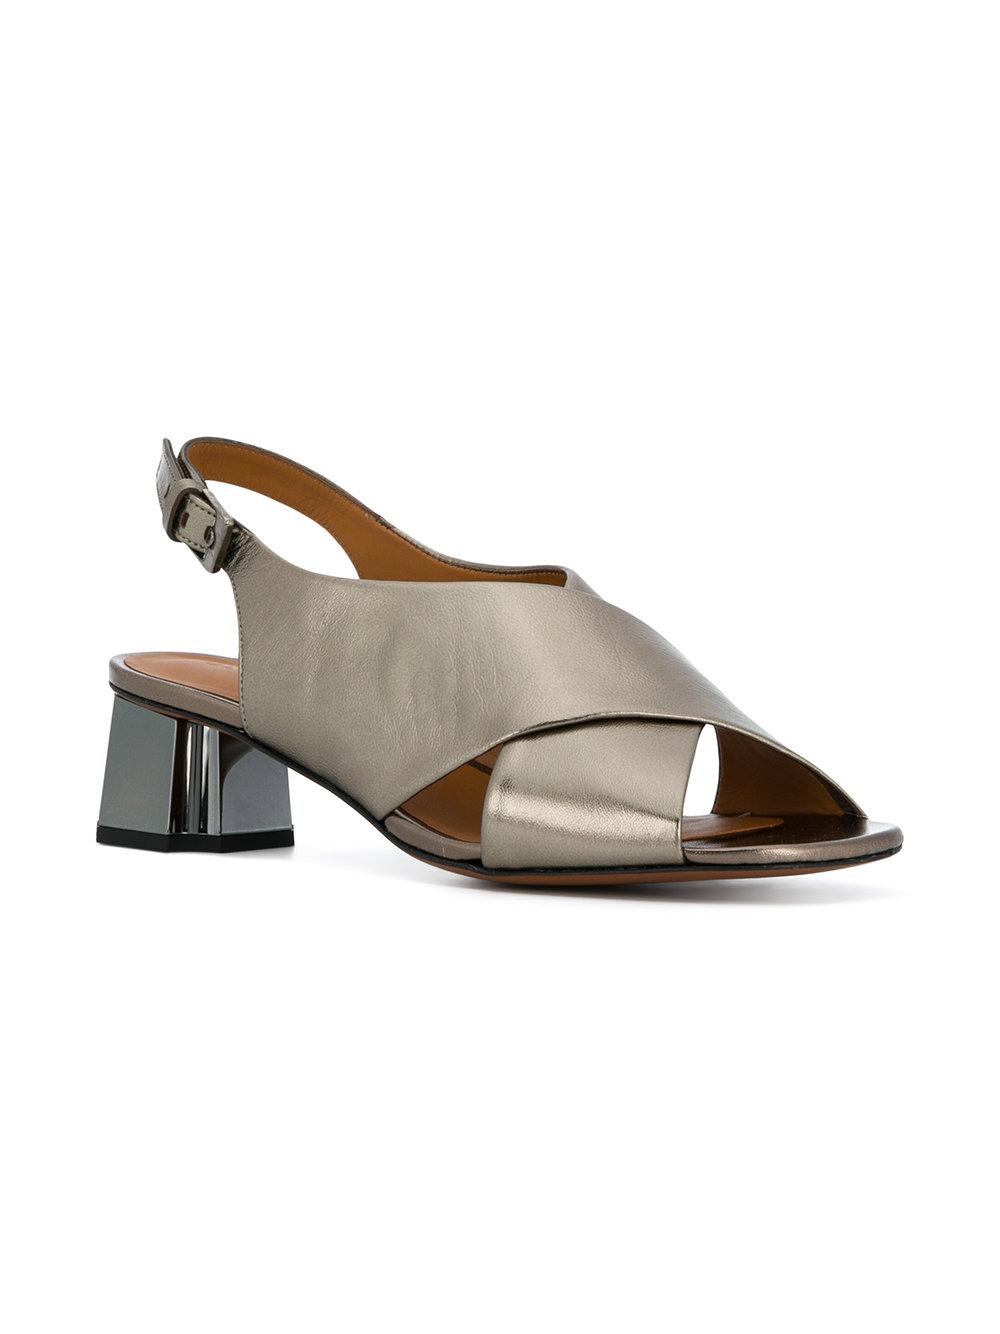 Robert Clergerie Laora sandals Outlet Latest Collections Outlet Best Prices H6uhk